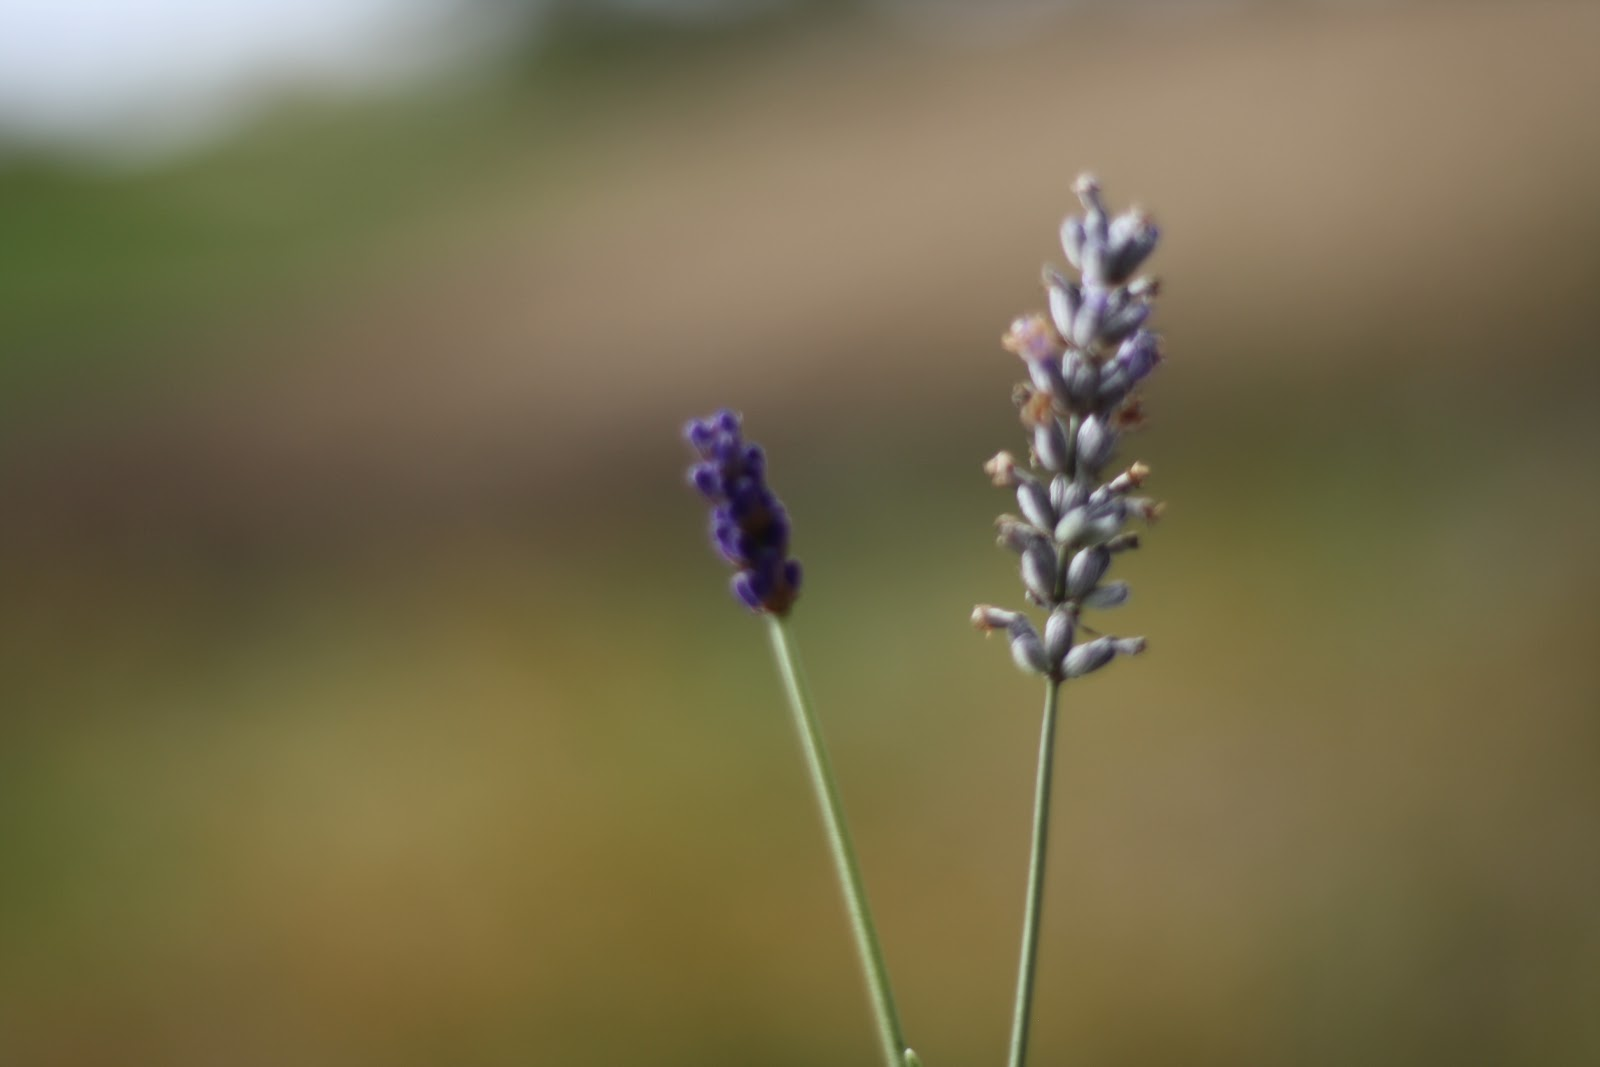 Weir's Lane Lavender Farm + Apiary - The Curated House